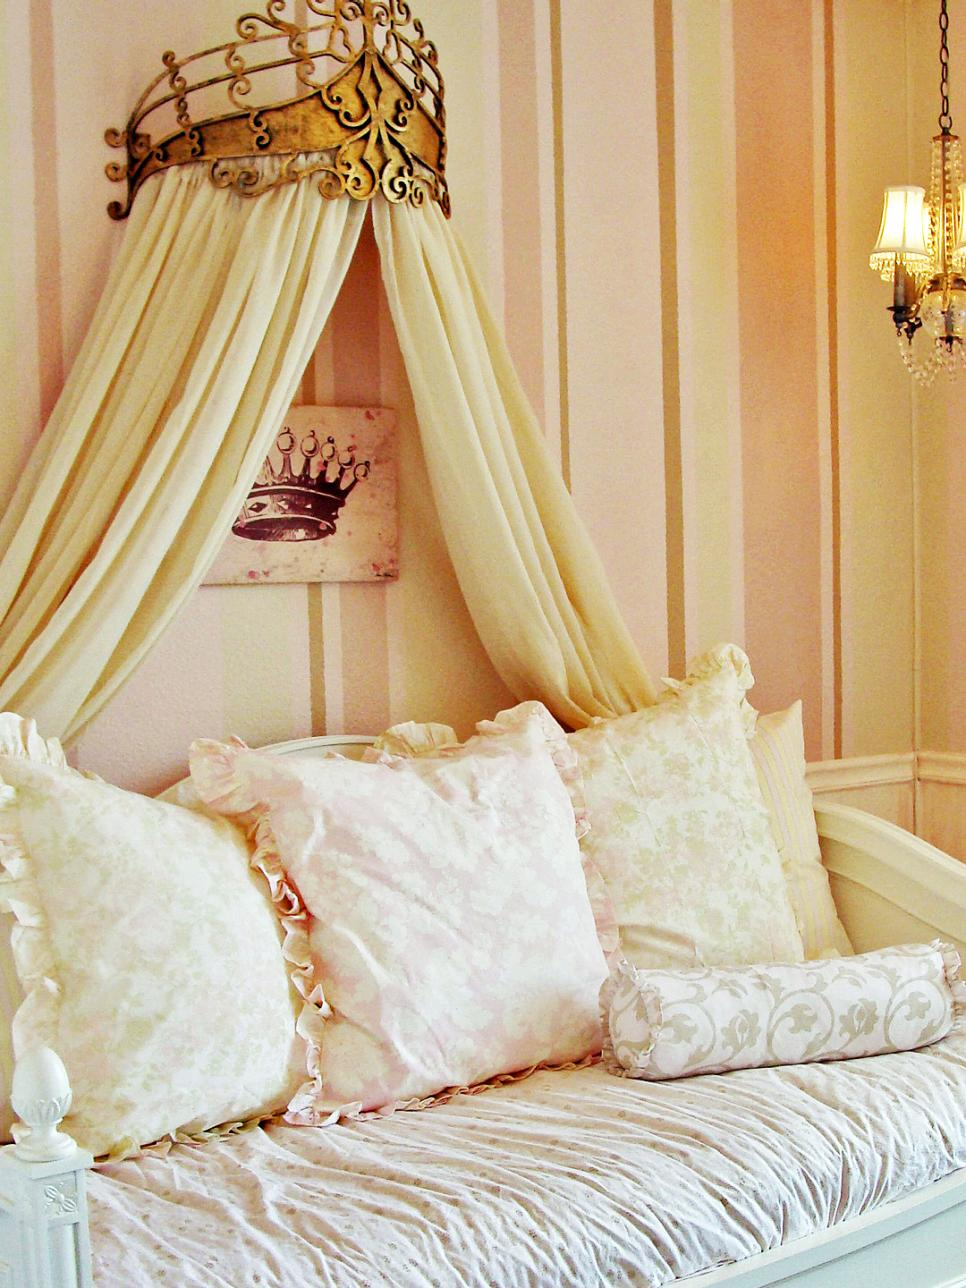 33 Cute And Simple Shabby Chic Bedroom Decorating Ideas ... on Simple But Cute Room Ideas  id=26374